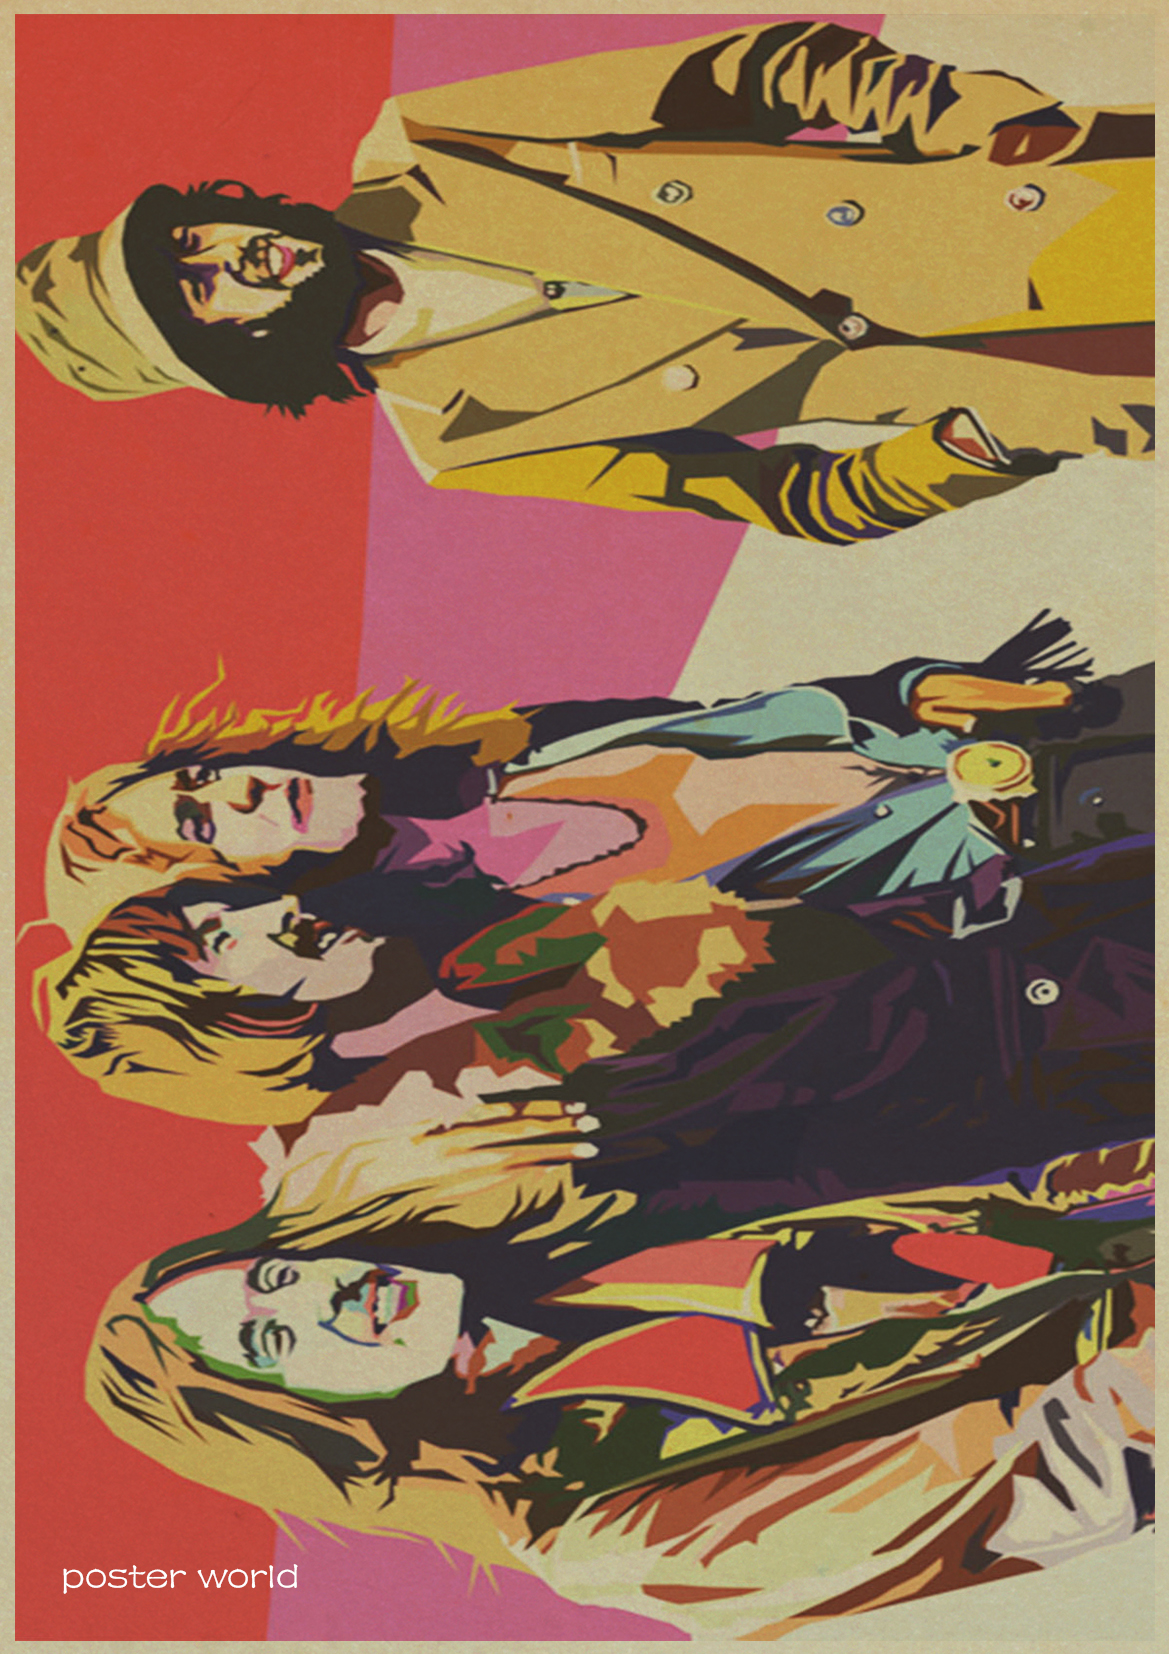 led-zeppelin-poster-vintage-exlover-sex-pics-singapore